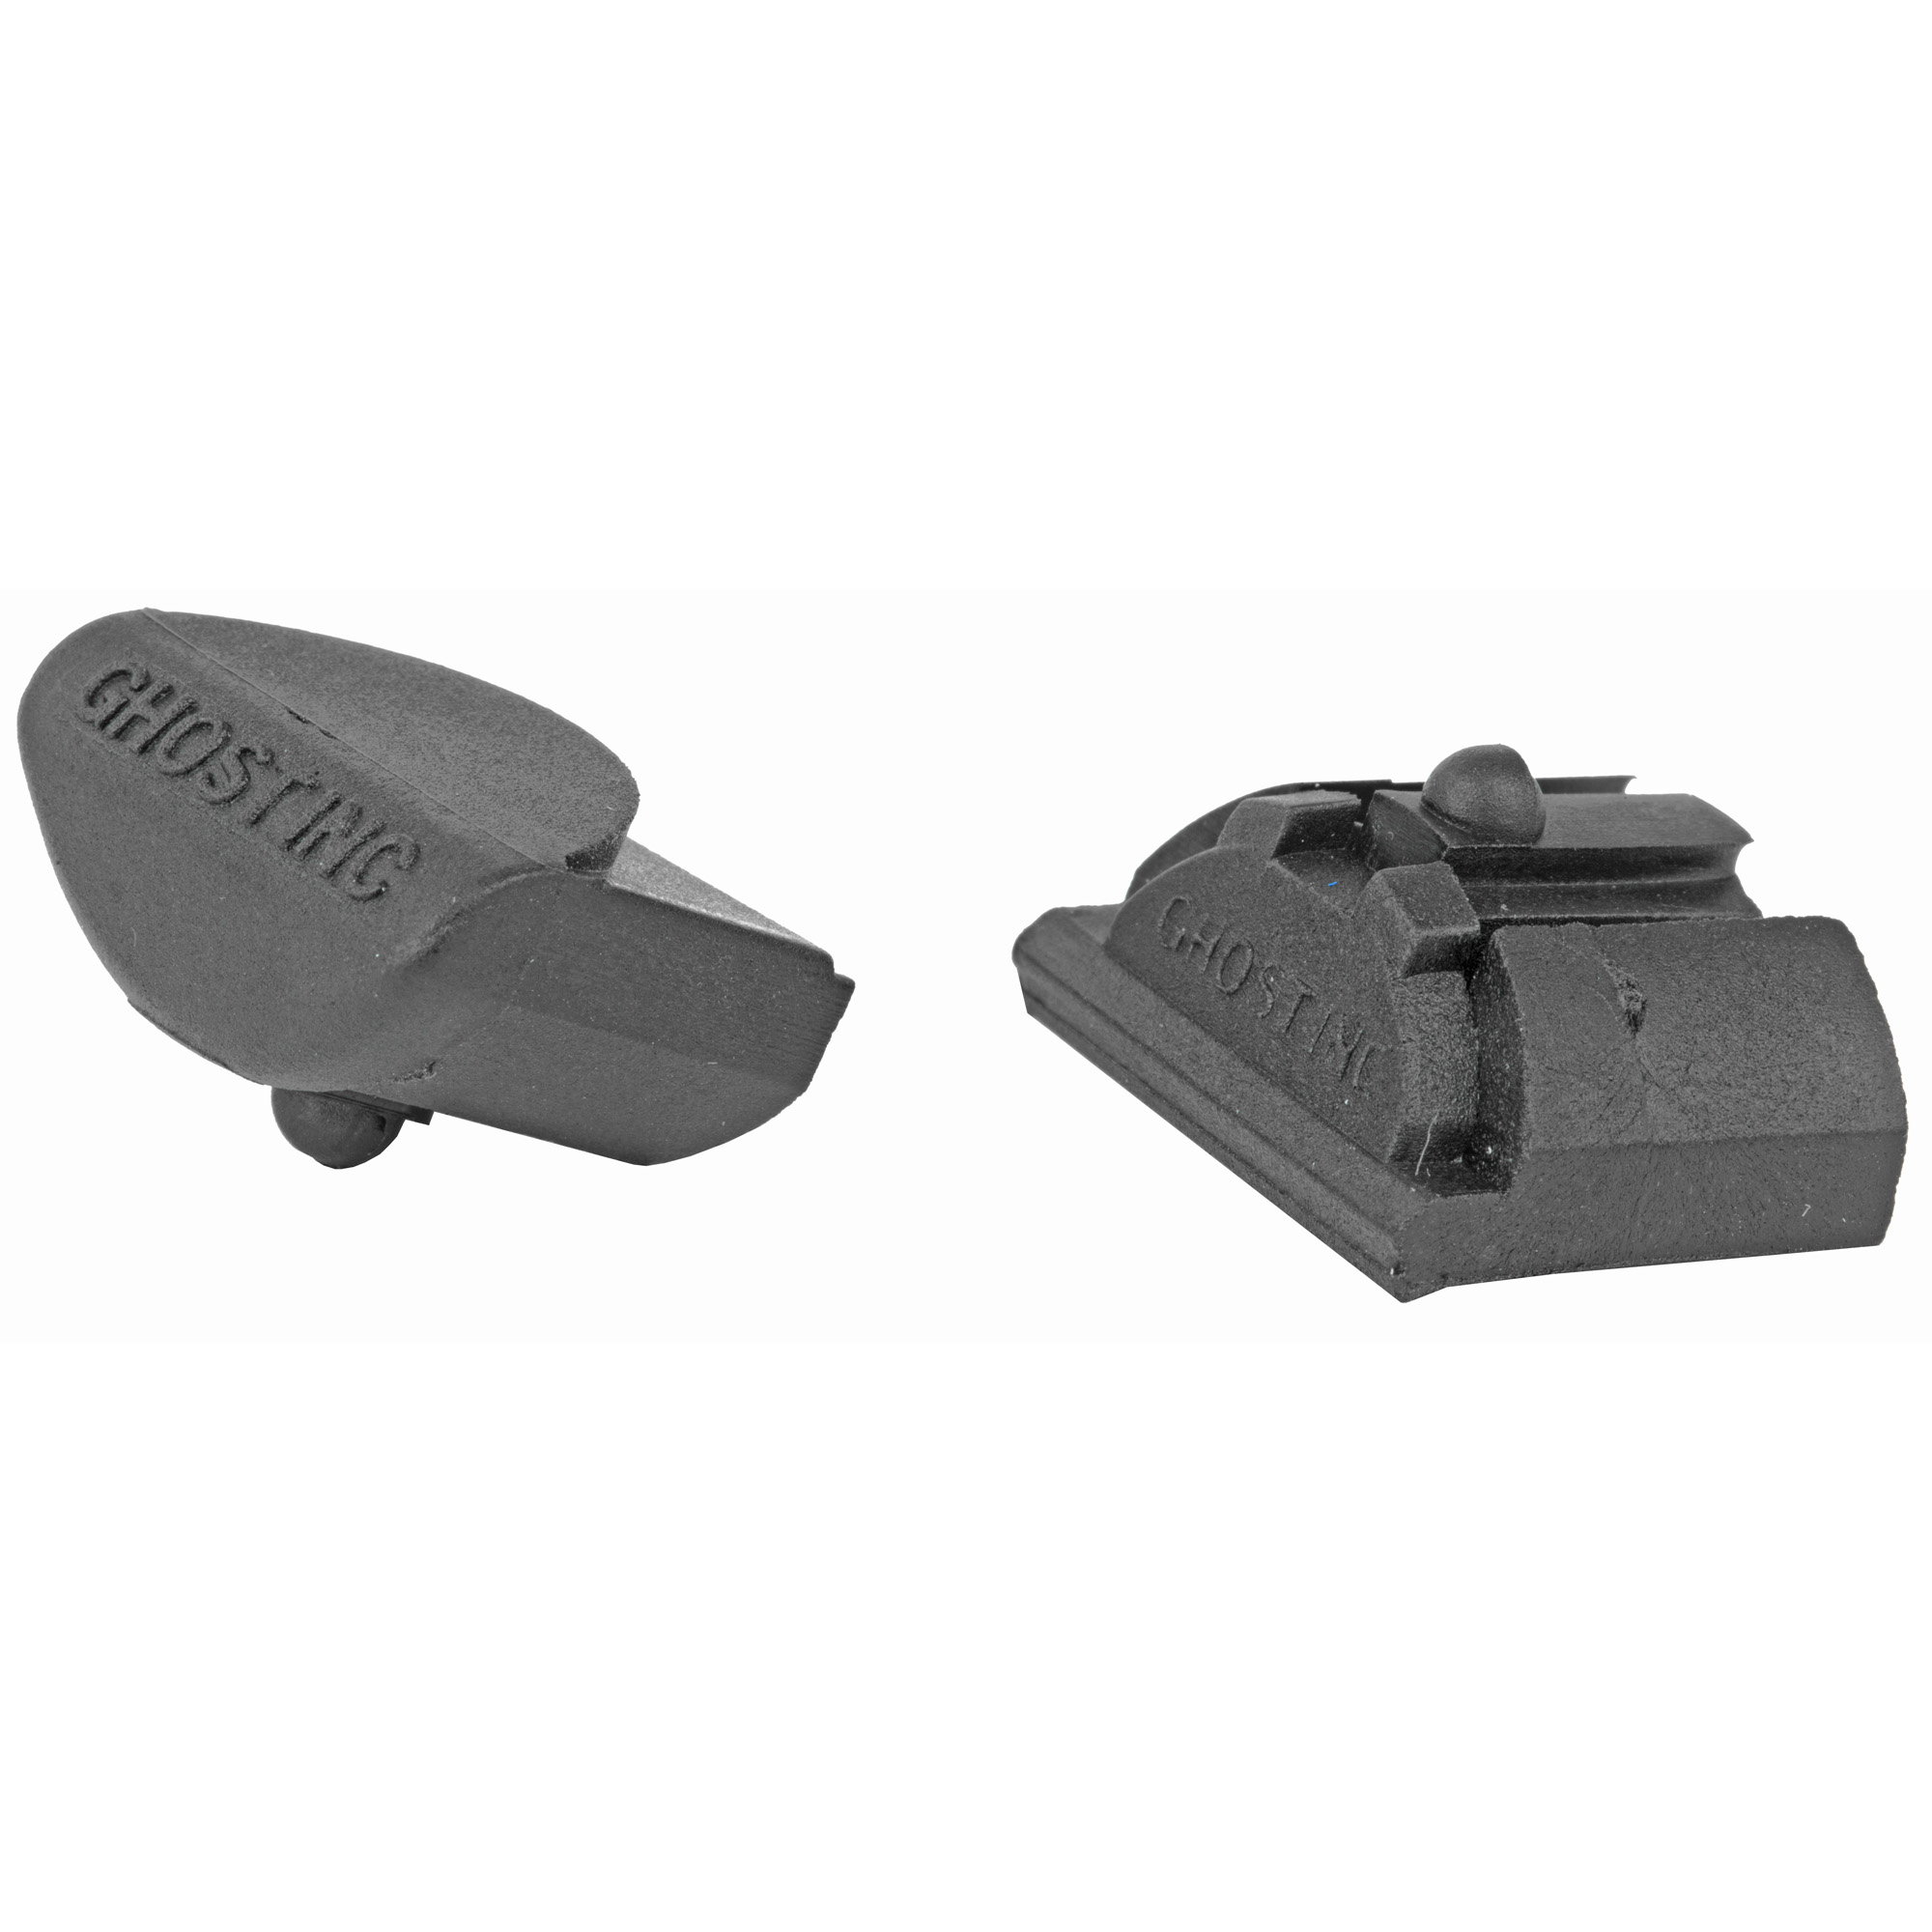 The Ghost Grip Plug is designed to keep dirt and debris out of the action of your Glock. It also serves as a magazine funnel to aid in reloading.